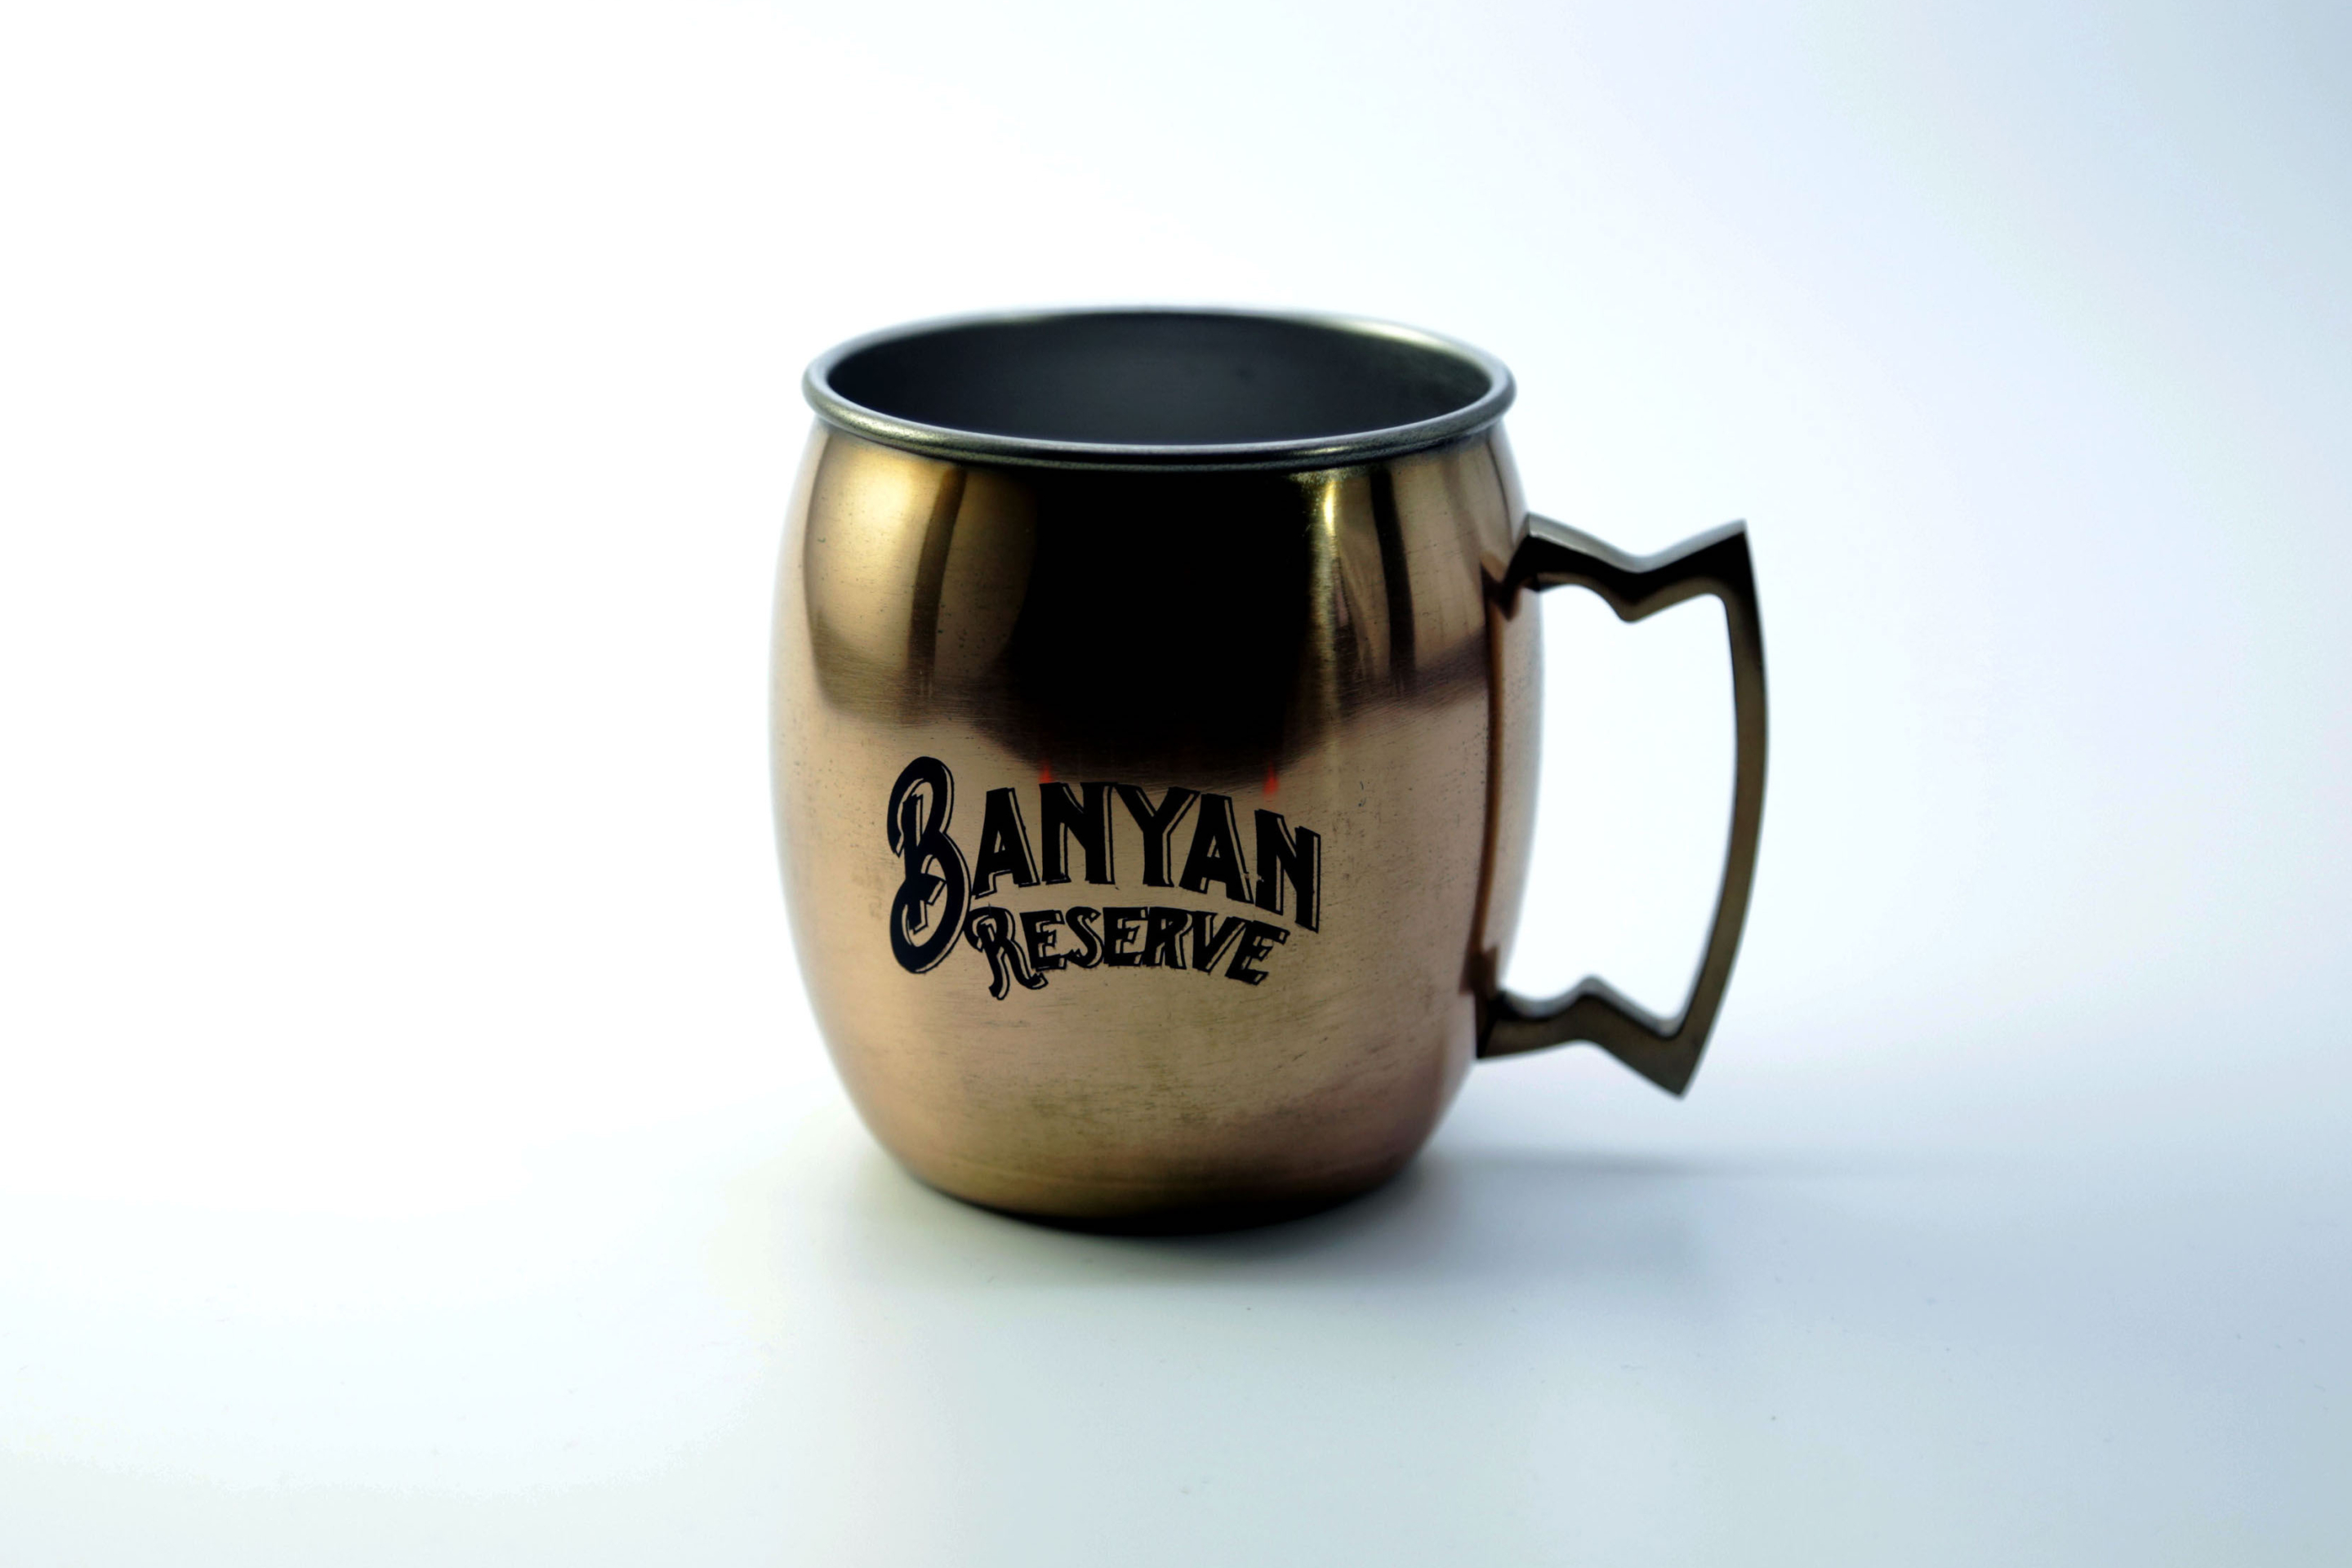 Banyan Copper Cup